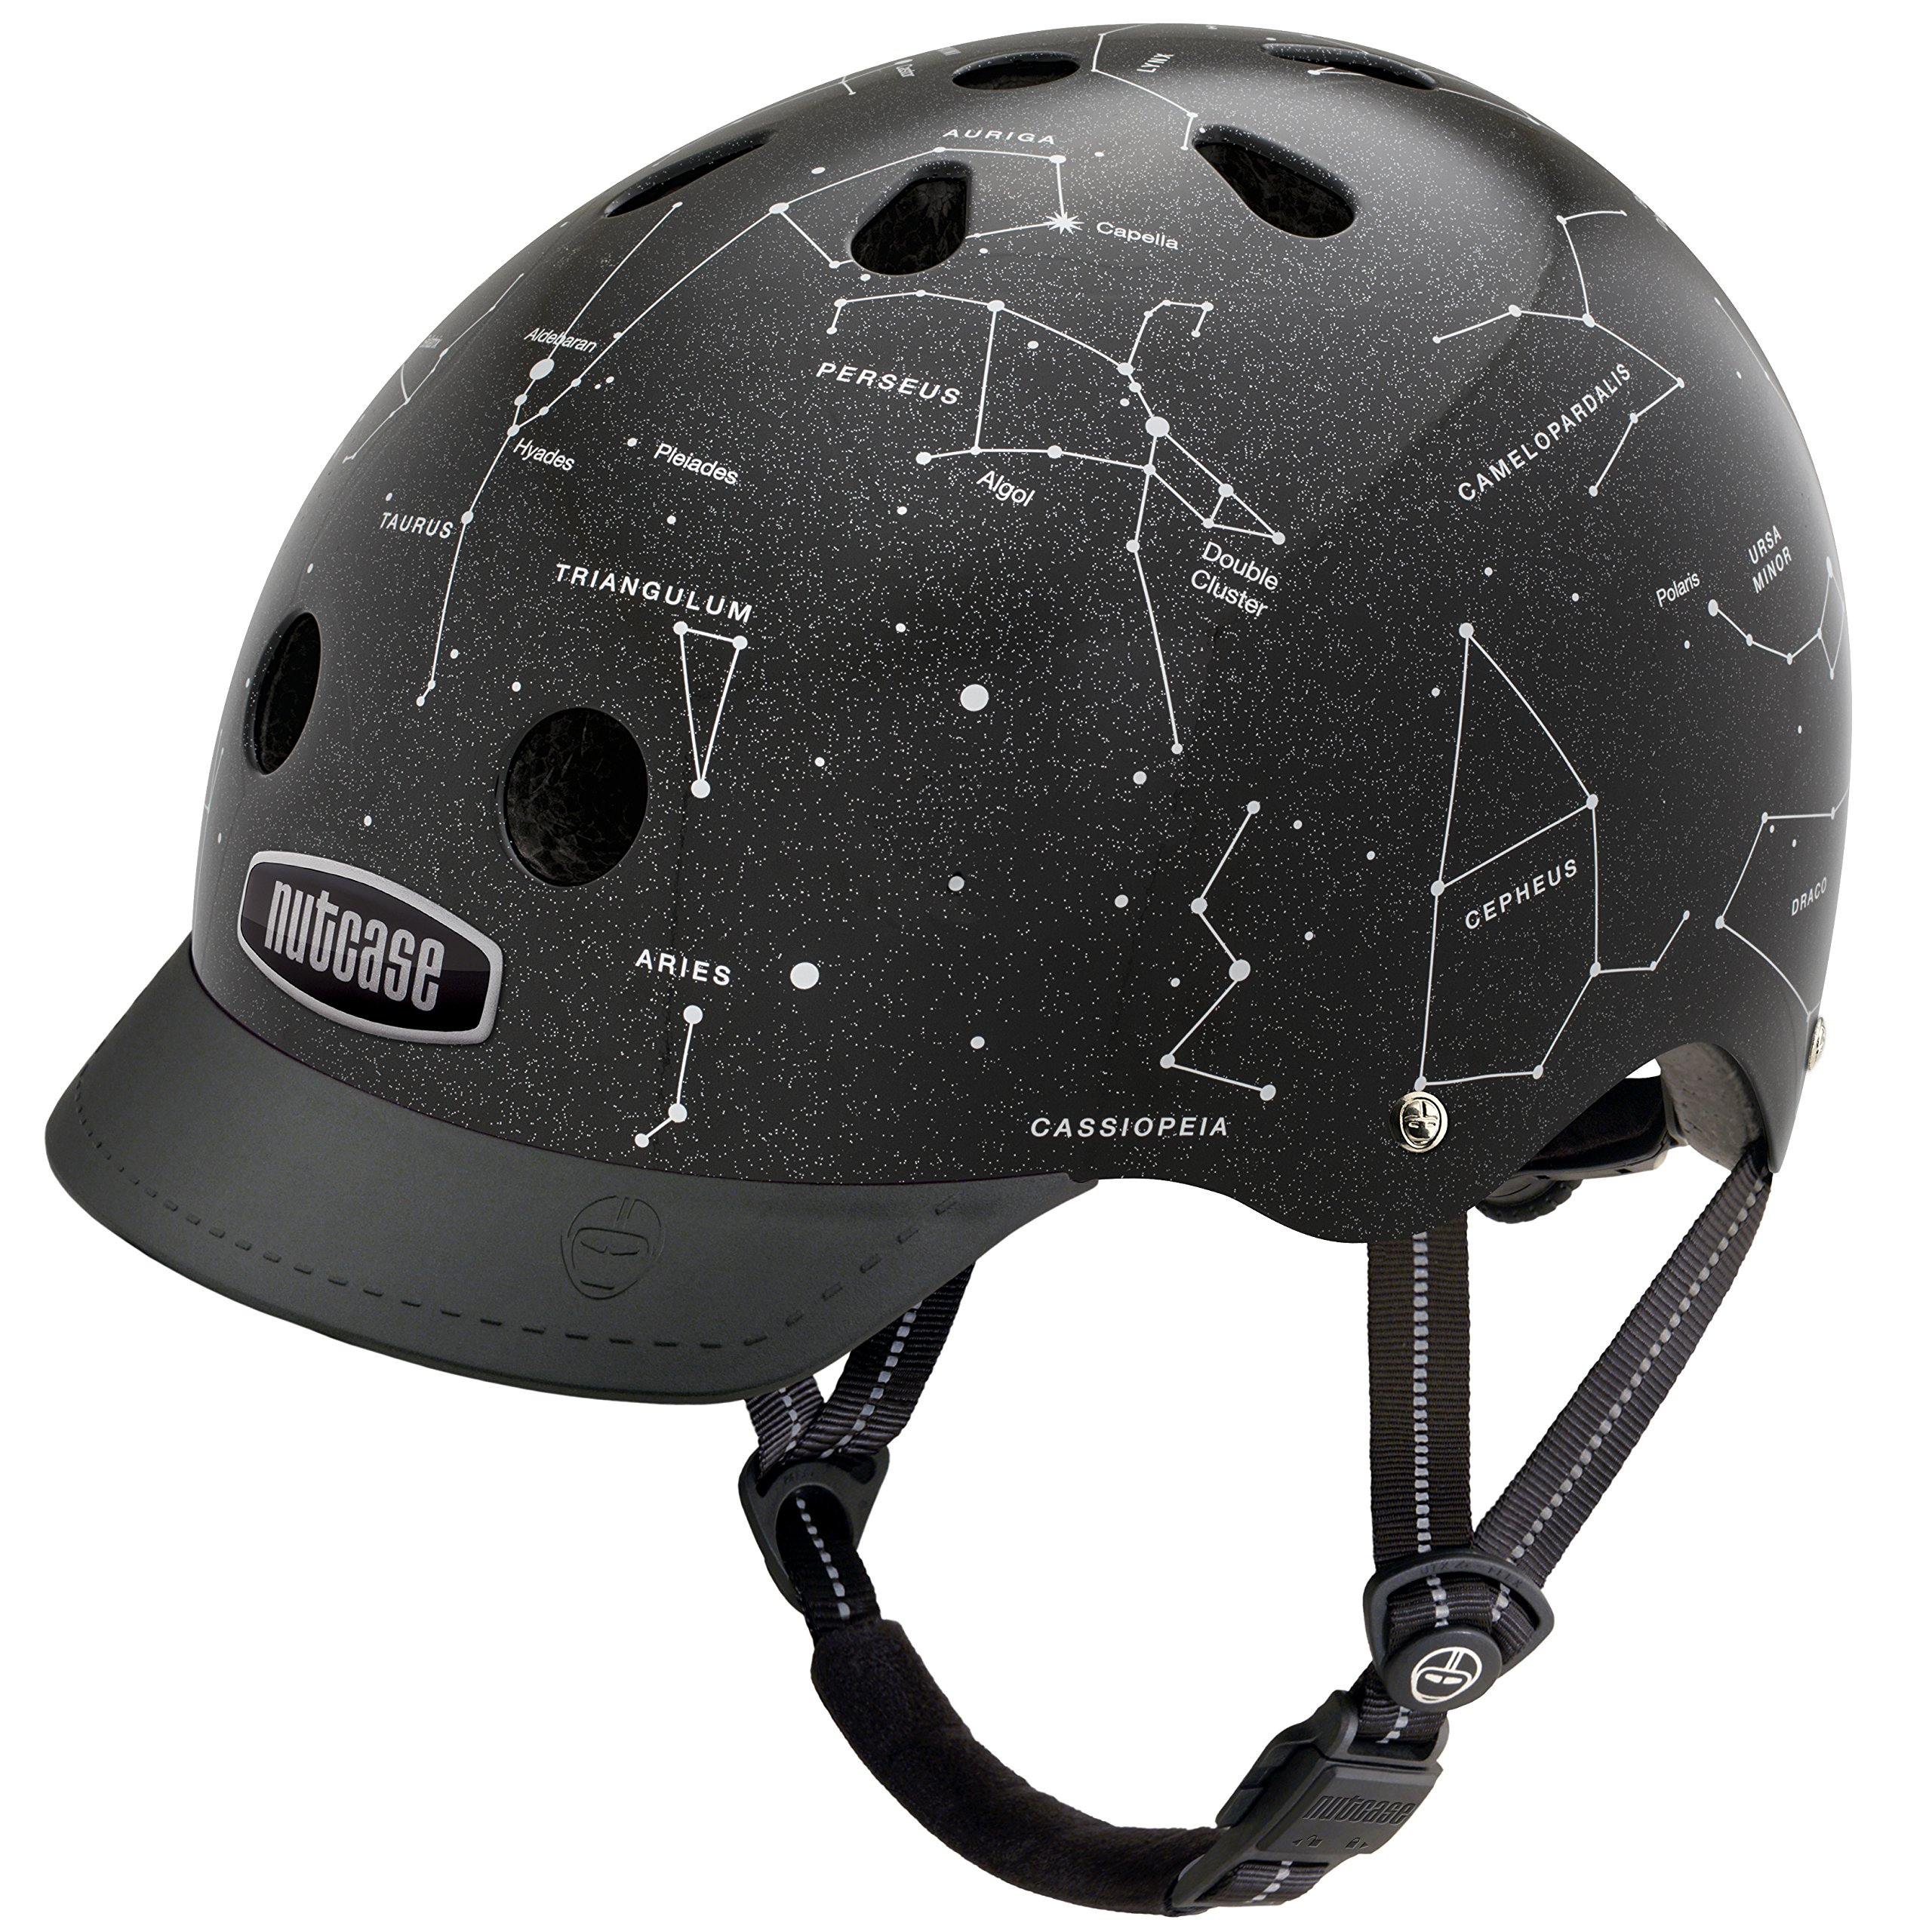 Nutcase - Patterned Street Bike Helmet for Adults, Constellations, Medium